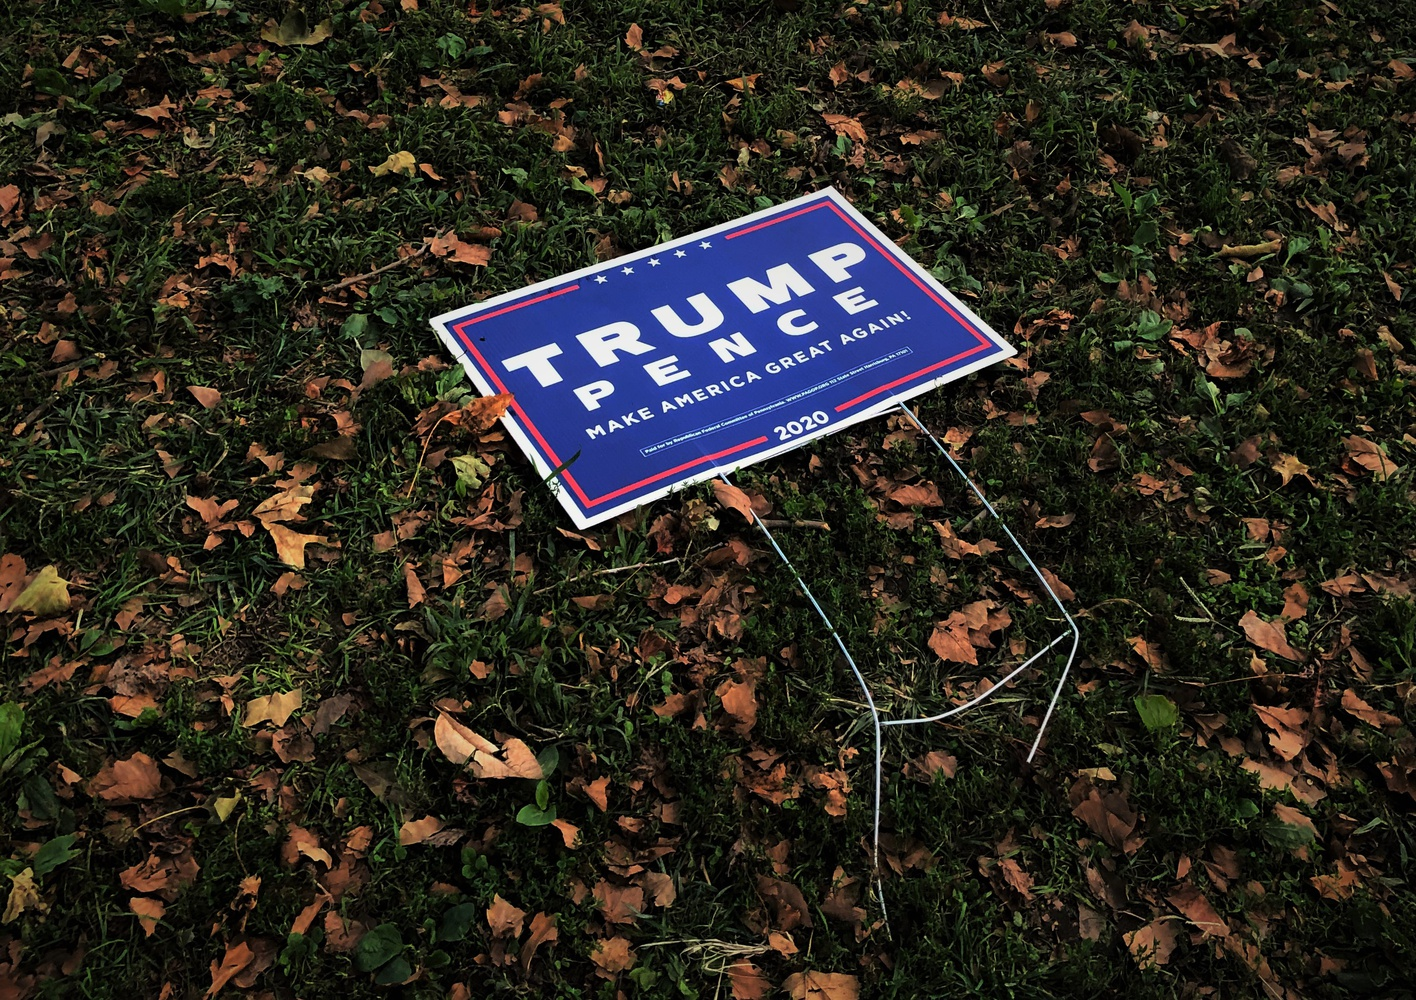 Outside a polling station, a Trump-Pence sign appears to have fallen over.